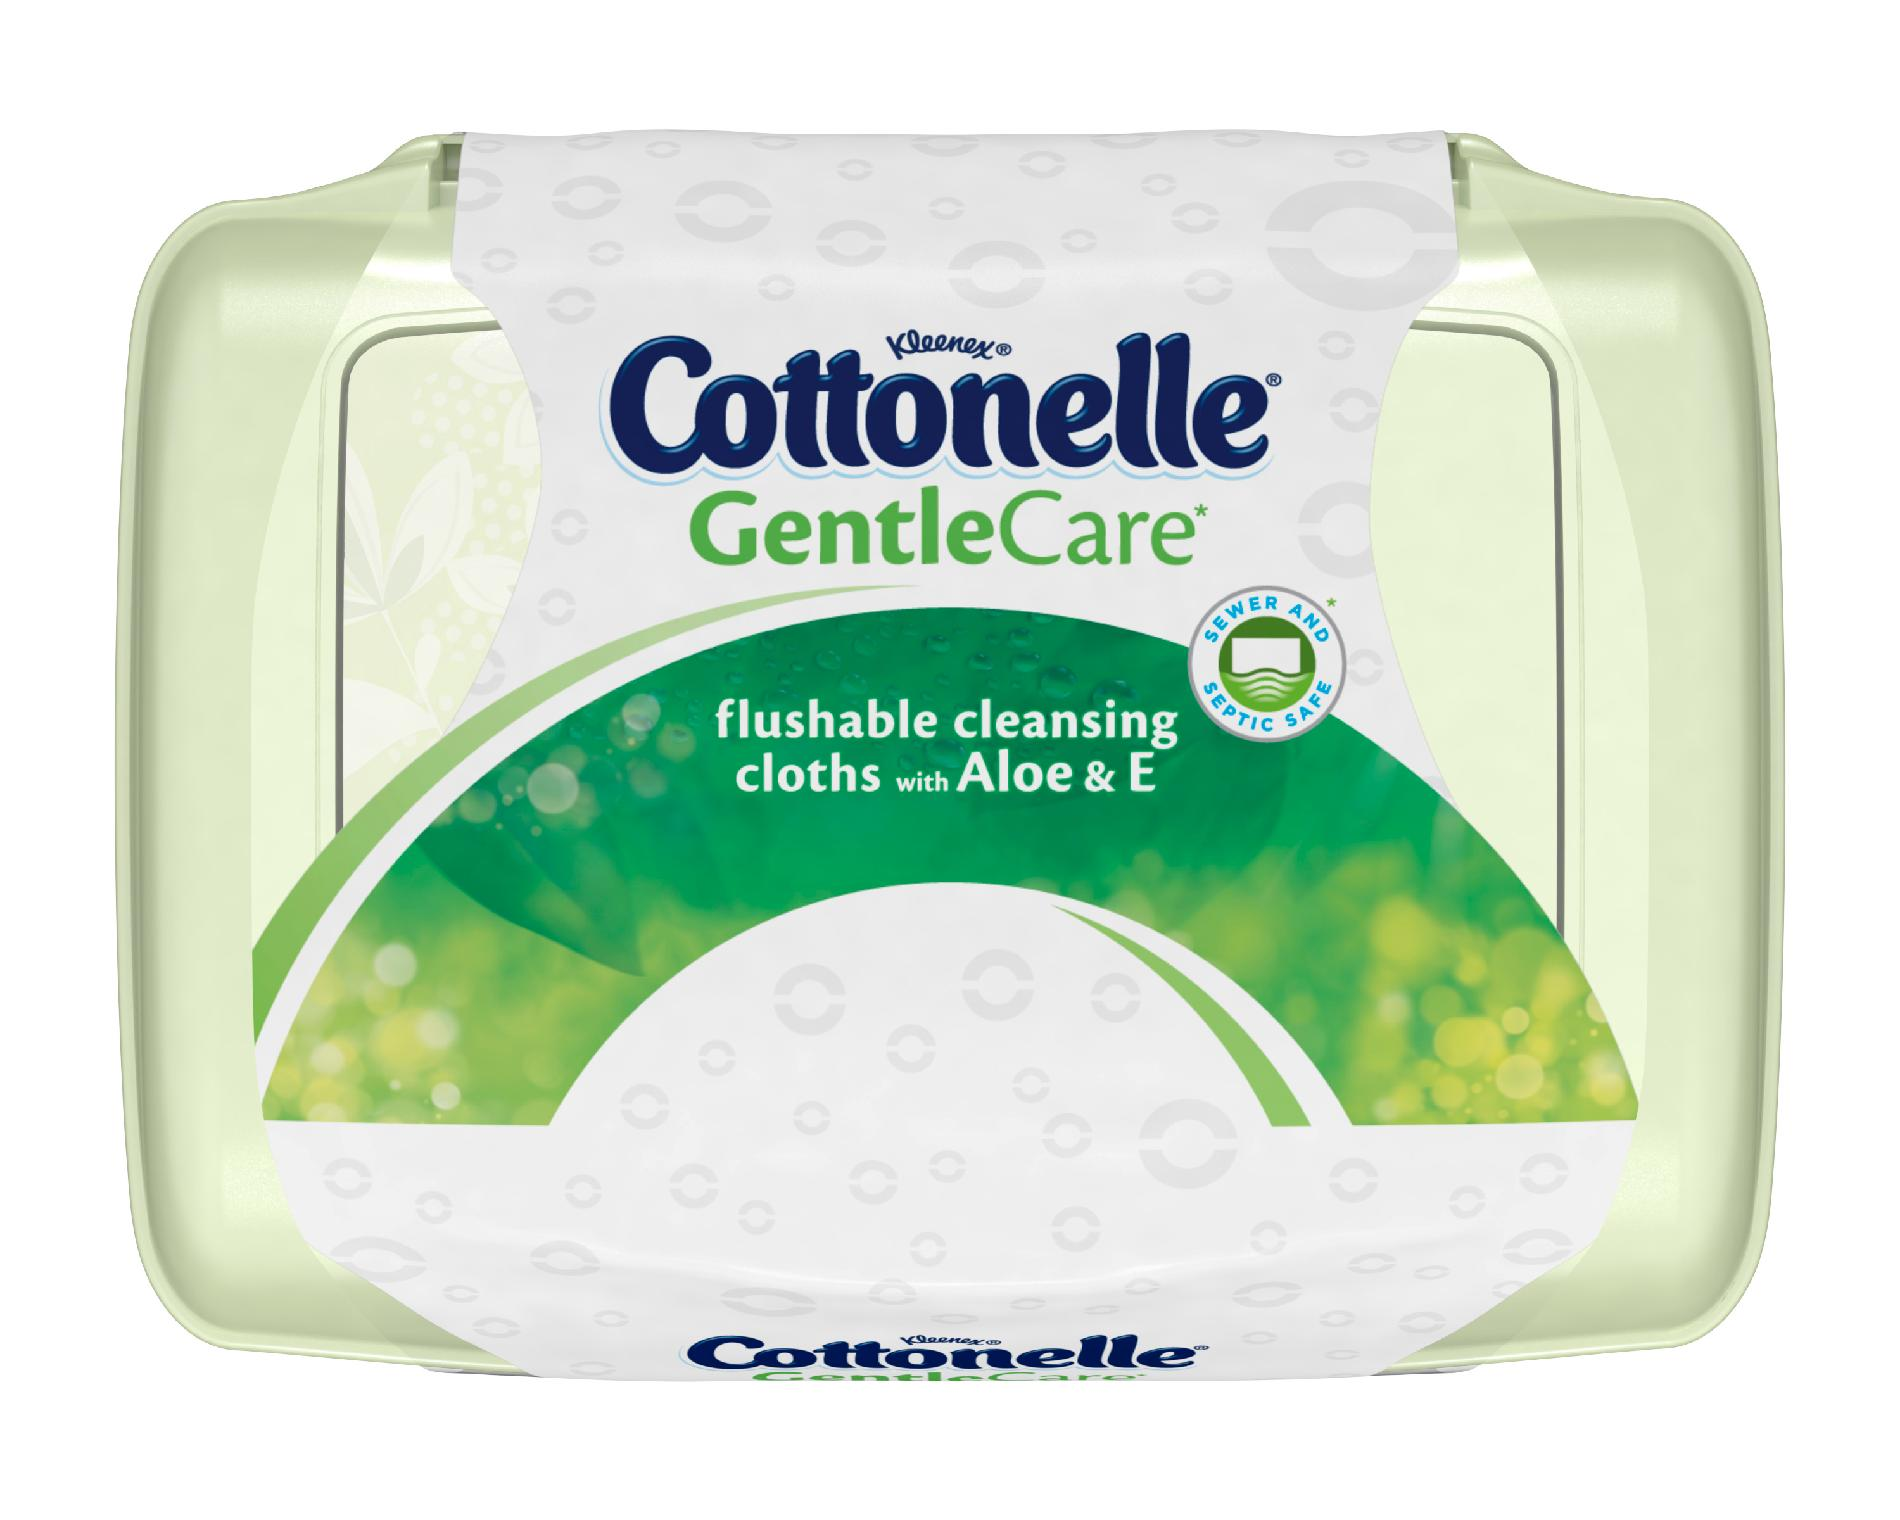 Cottonelle Gentle Care* Flushable Cleansing Cloths with Aloe & E Tub, 42ct